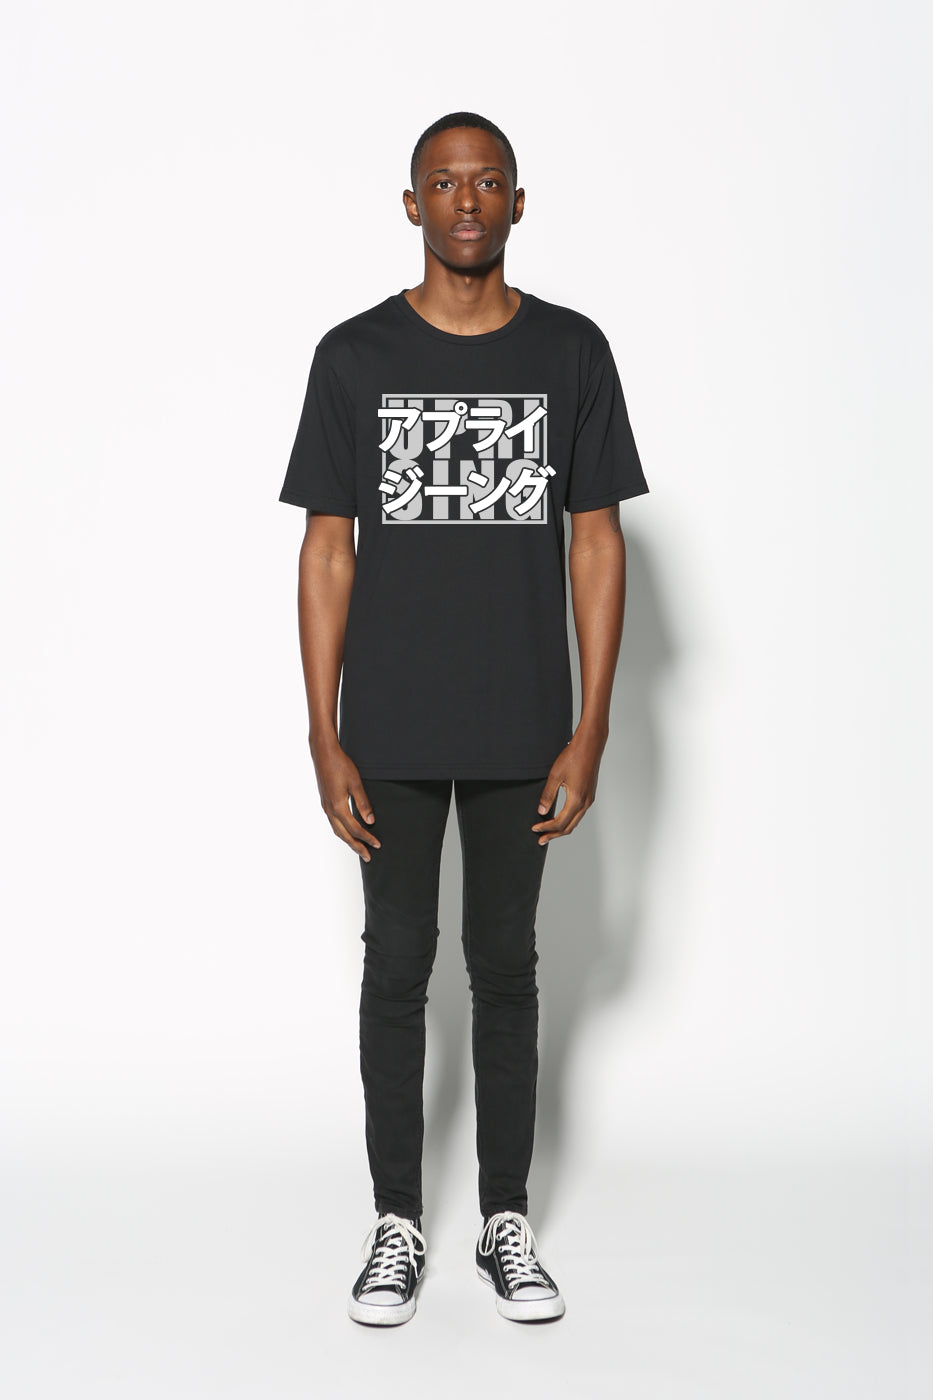 Japanese U Graphic Tee